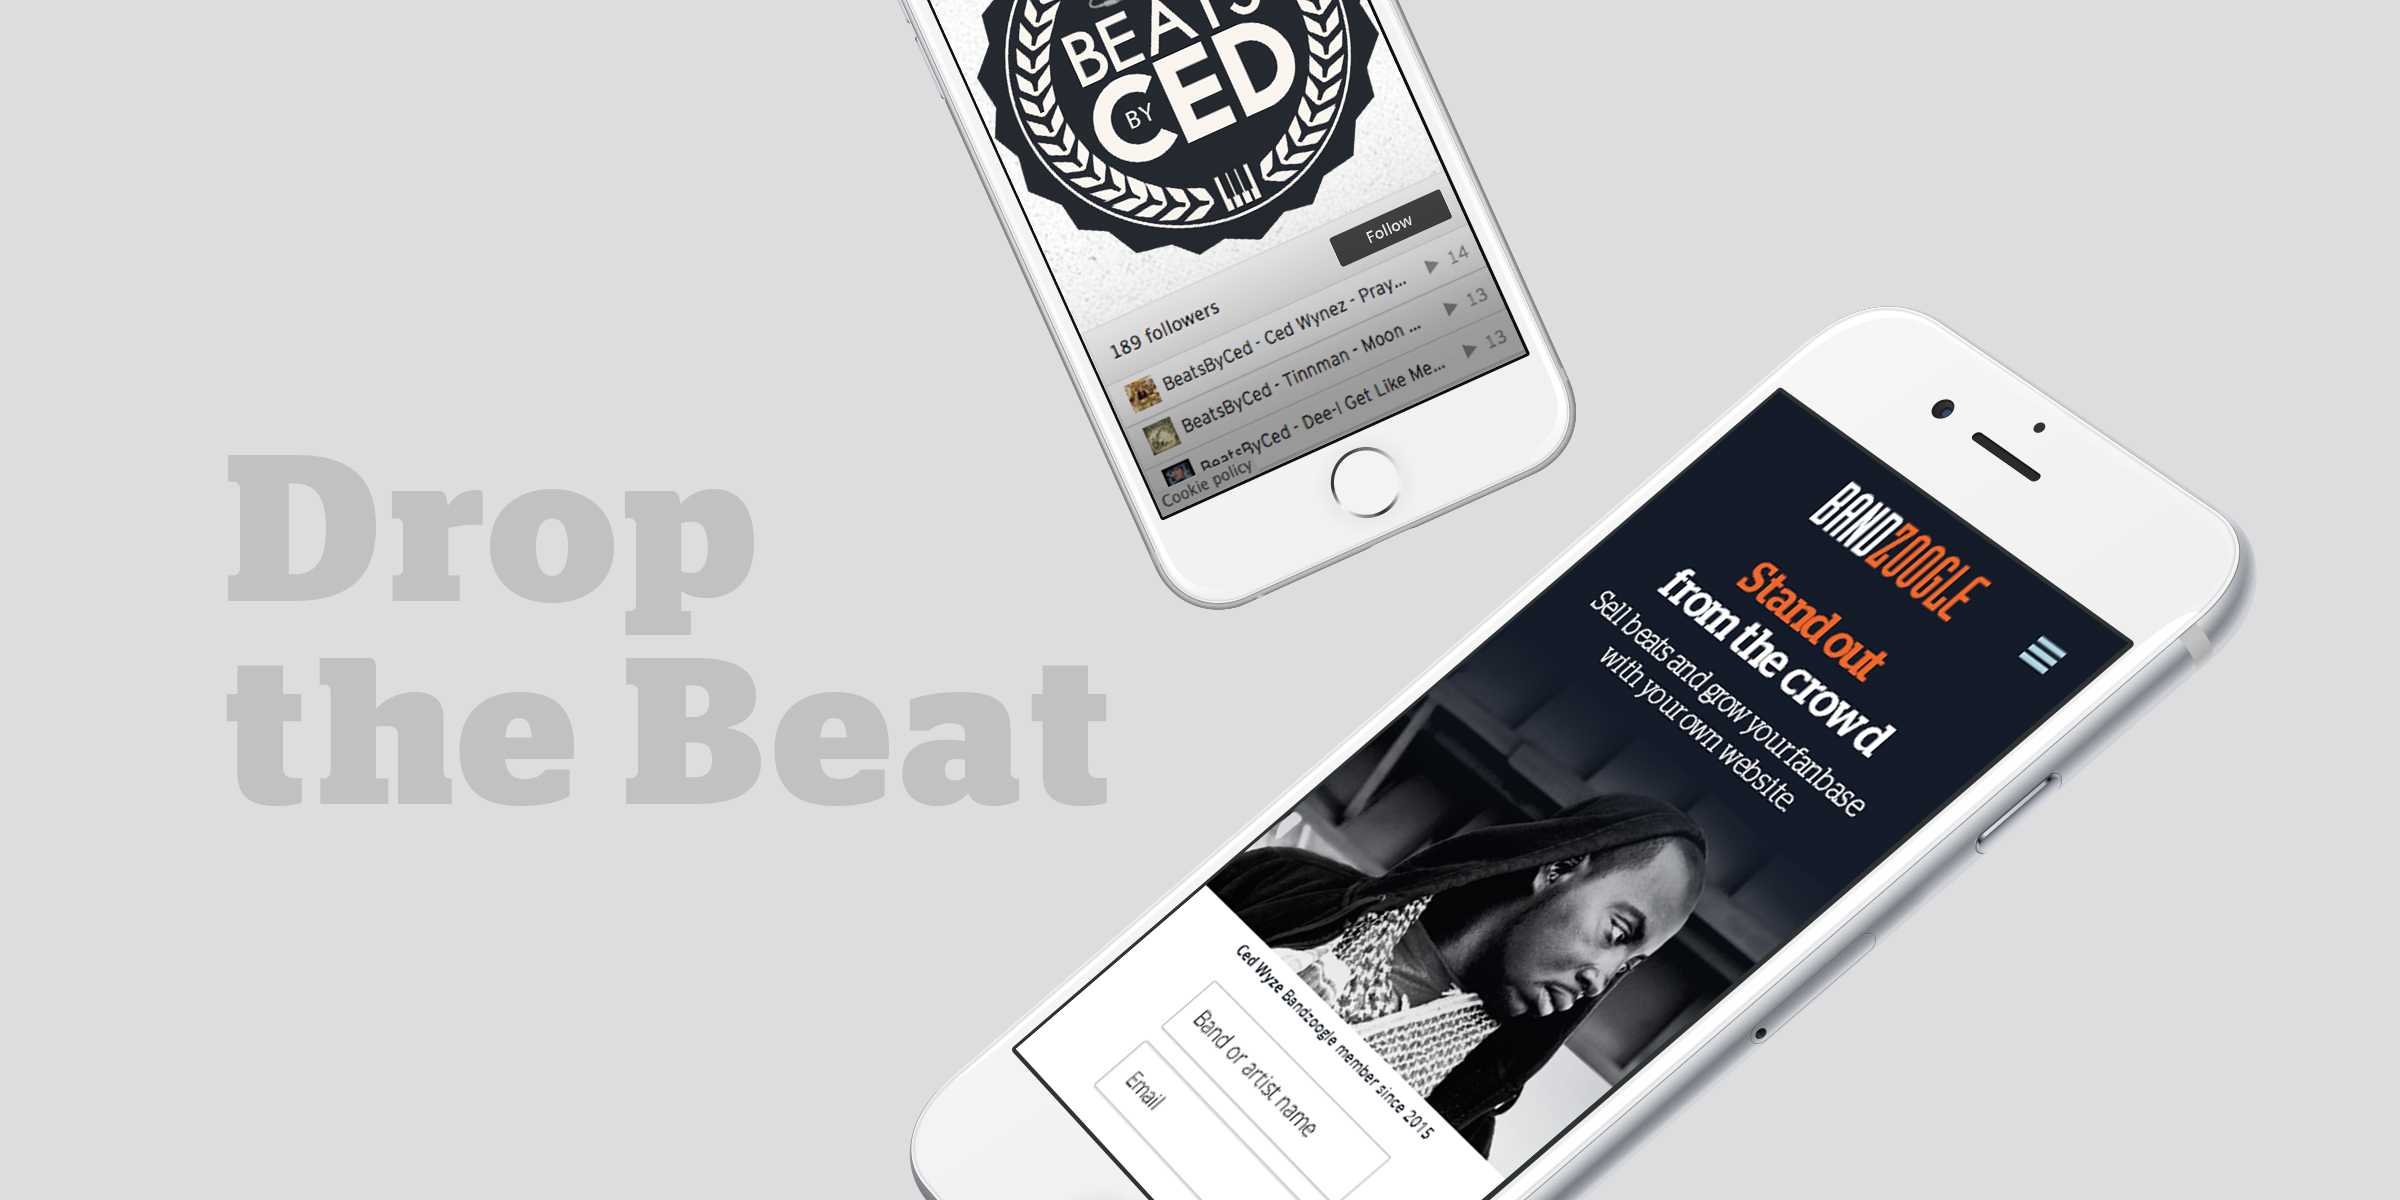 beatmakers-drop-the-beat-mobile-merian-media